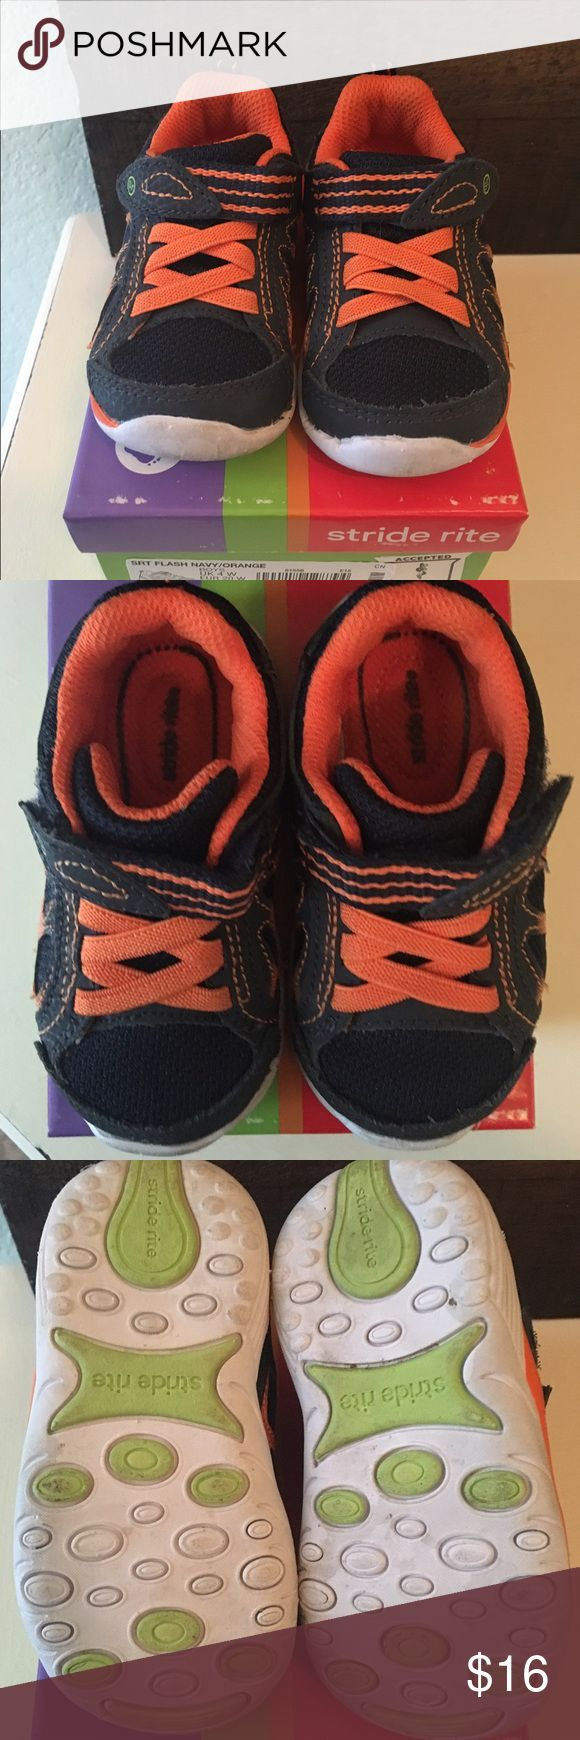 Stride Rite 4.5 Wide Navy and Orange Sneaker Stride Rite 4.5 Wide Navy and Orange Sneaker. Listing as GUC as they have been worn, but only a handful of times. Box not included. Smoke free, dog friendly home. Stride Rite Shoes Sneakers